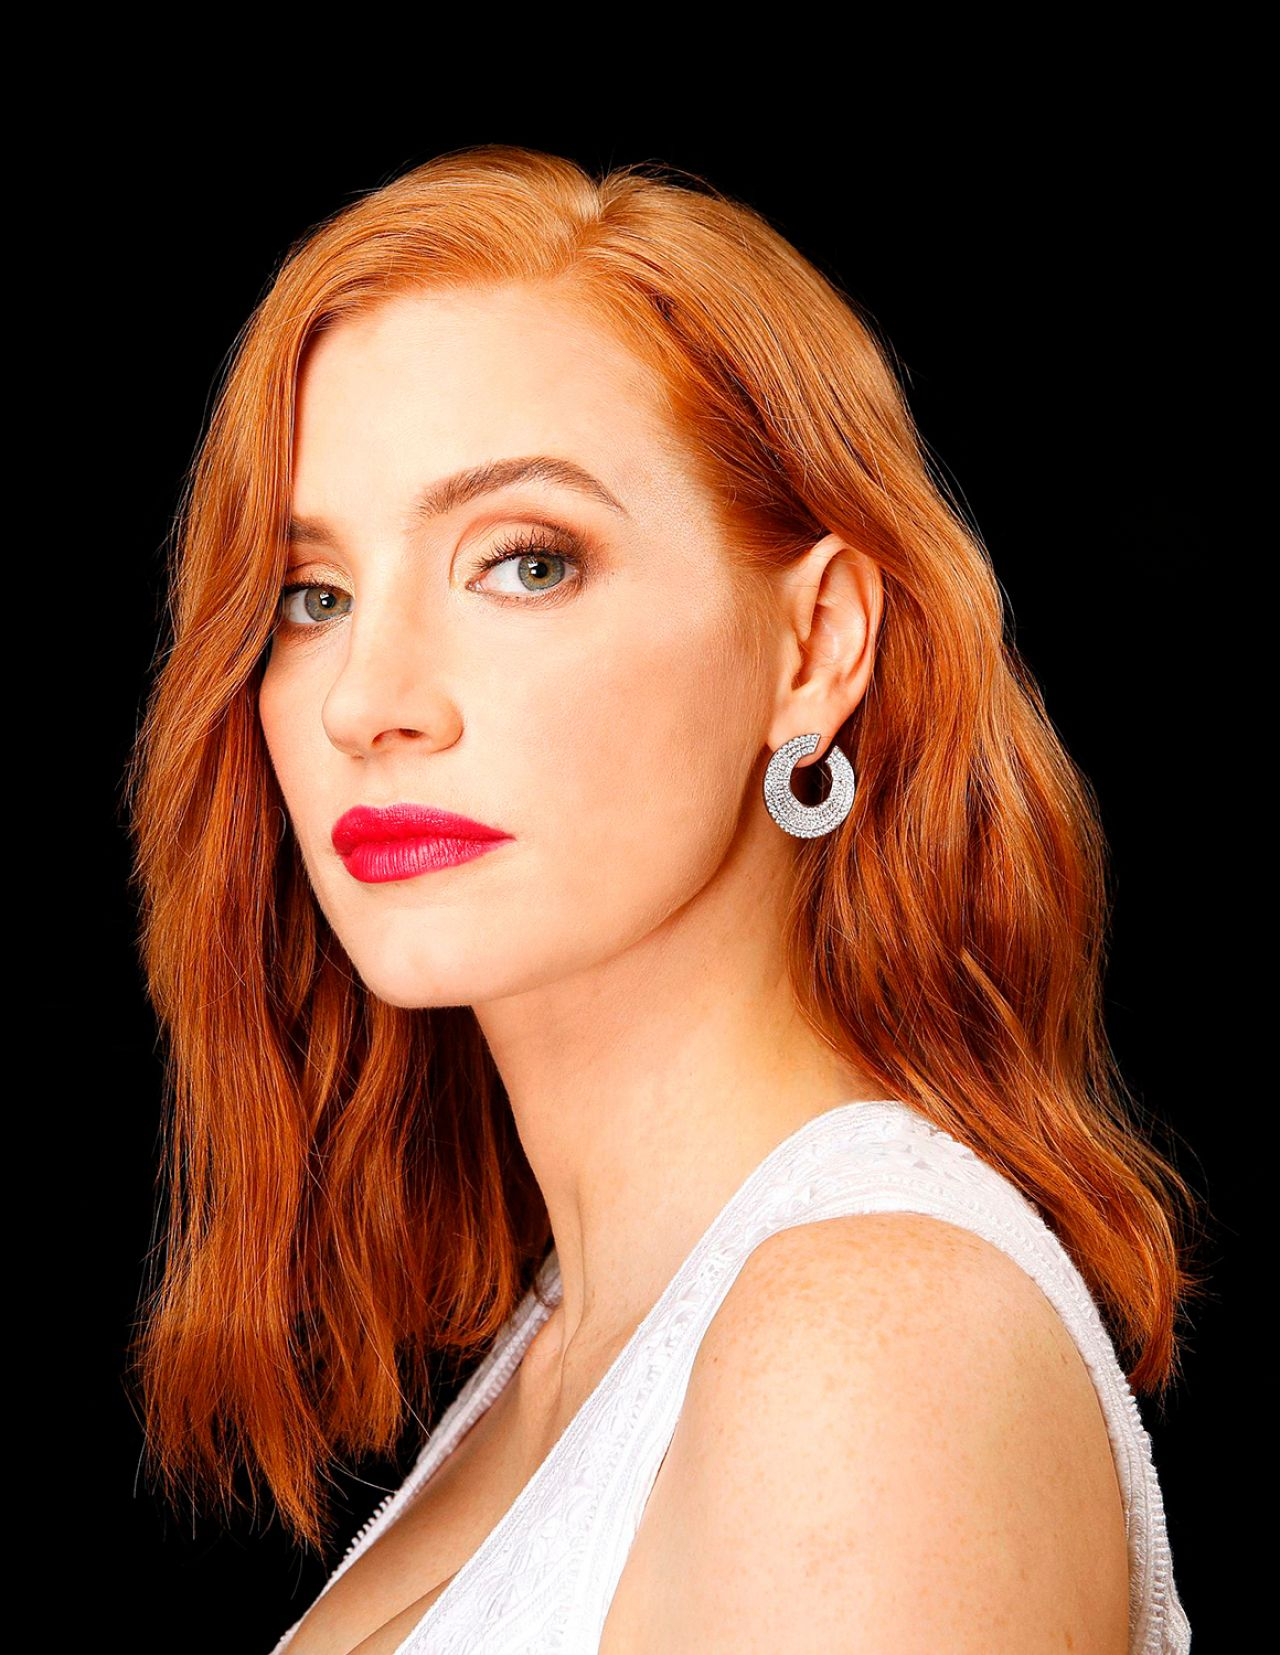 Jessica Chastain – Los Angeles Times Photoshoot, September 2015 Jessica Chastain